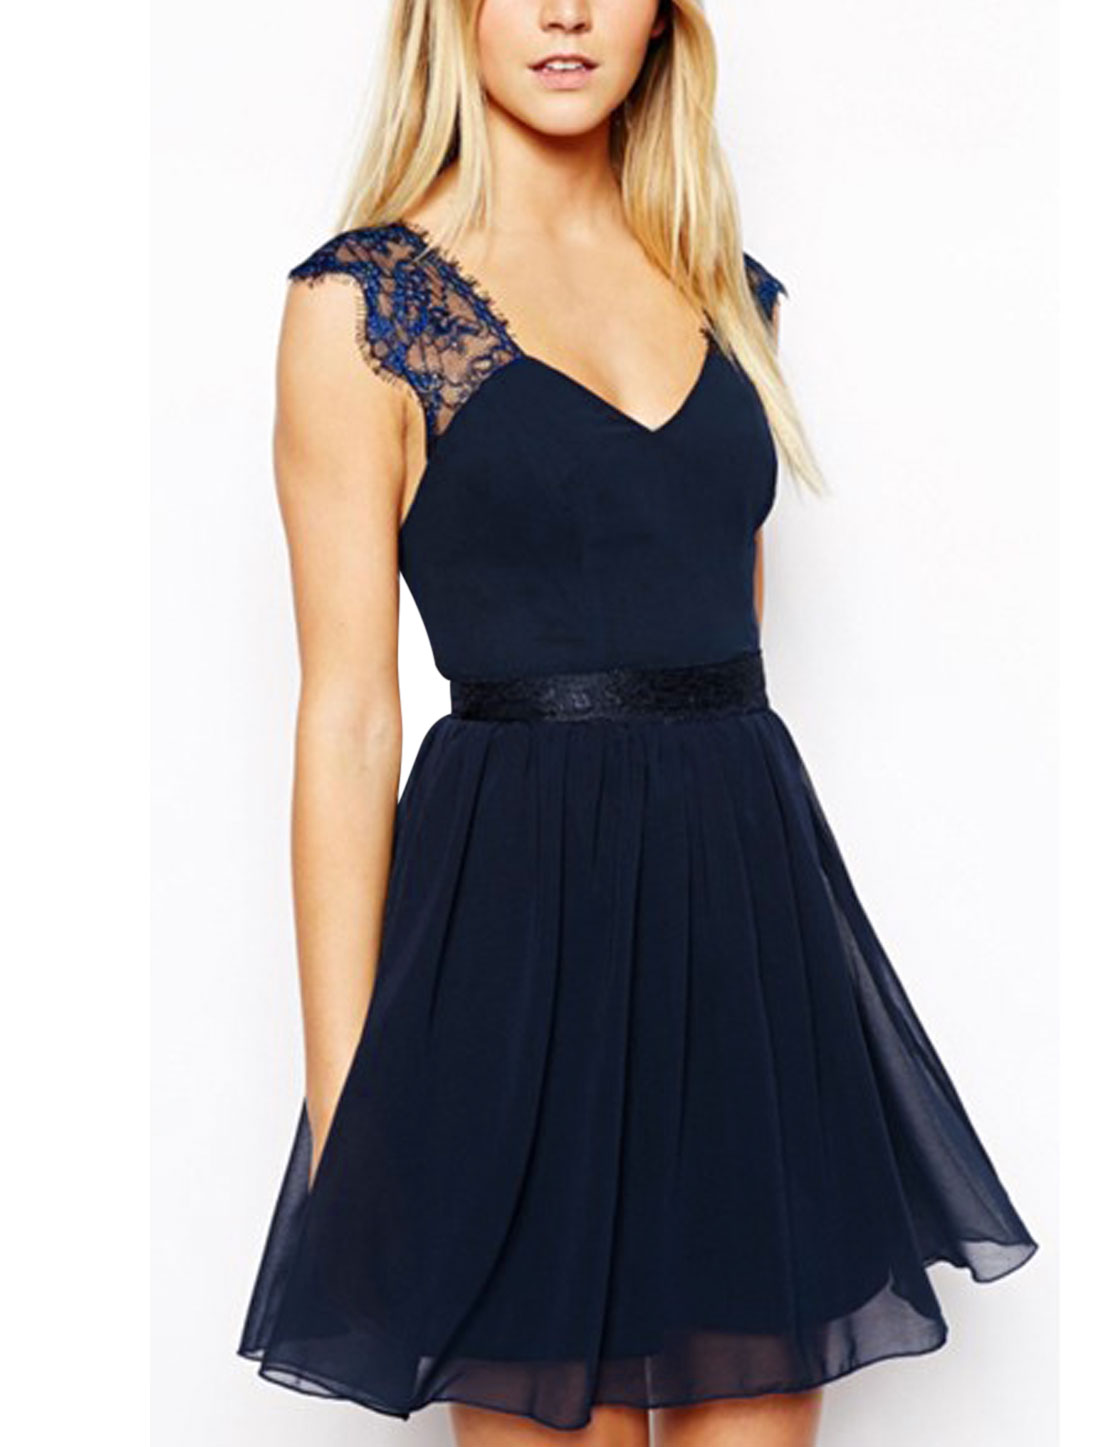 Lady Deep V Neck Backless Zipper Back Skater Dress Navy Blue M